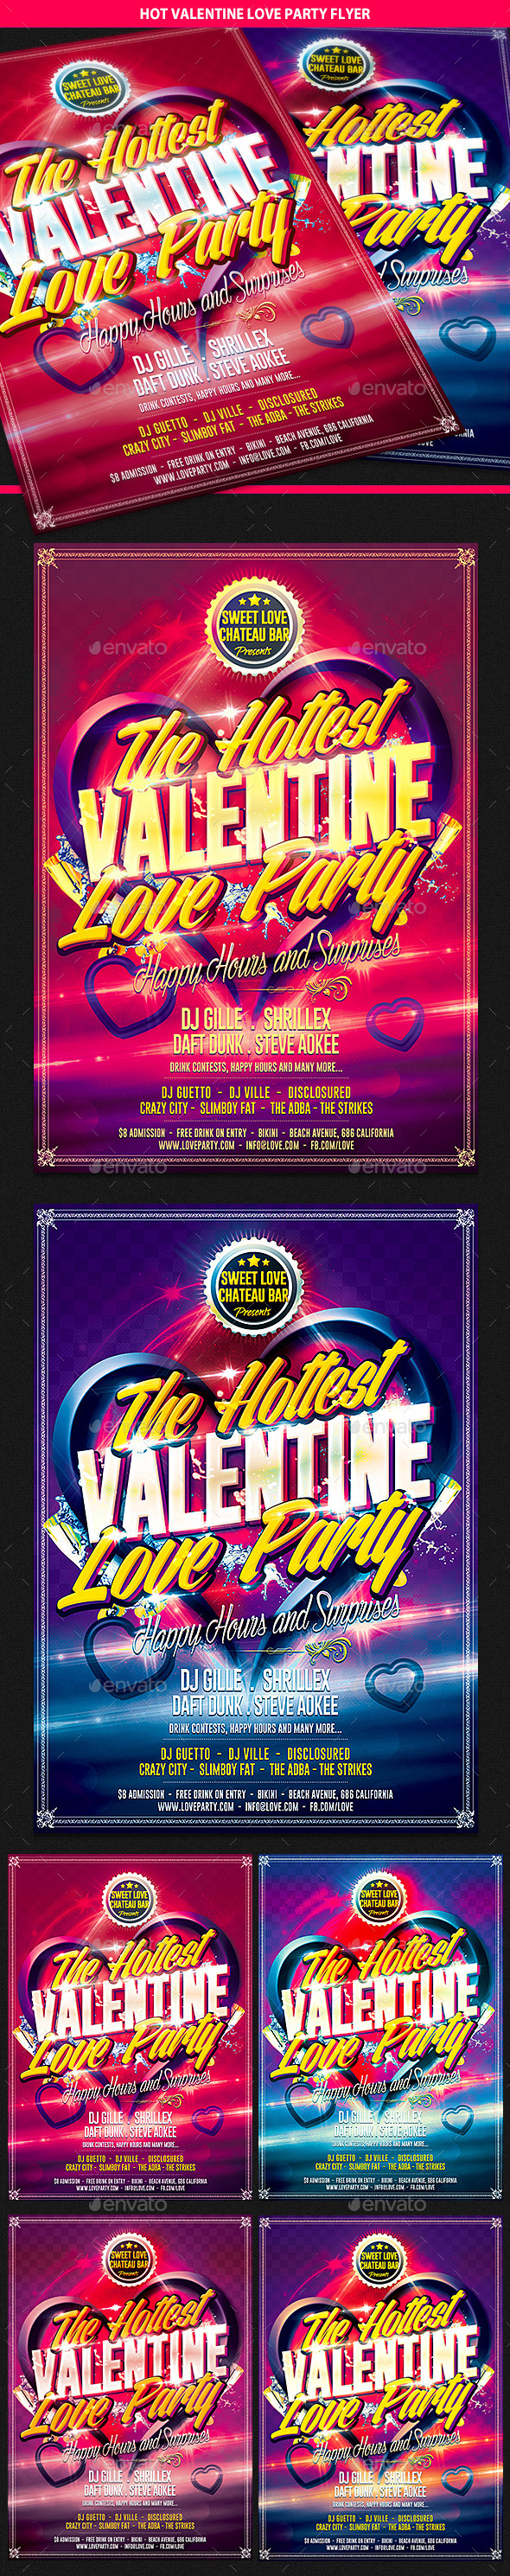 Hot Valentine Love Party Flyer - Clubs & Parties Events